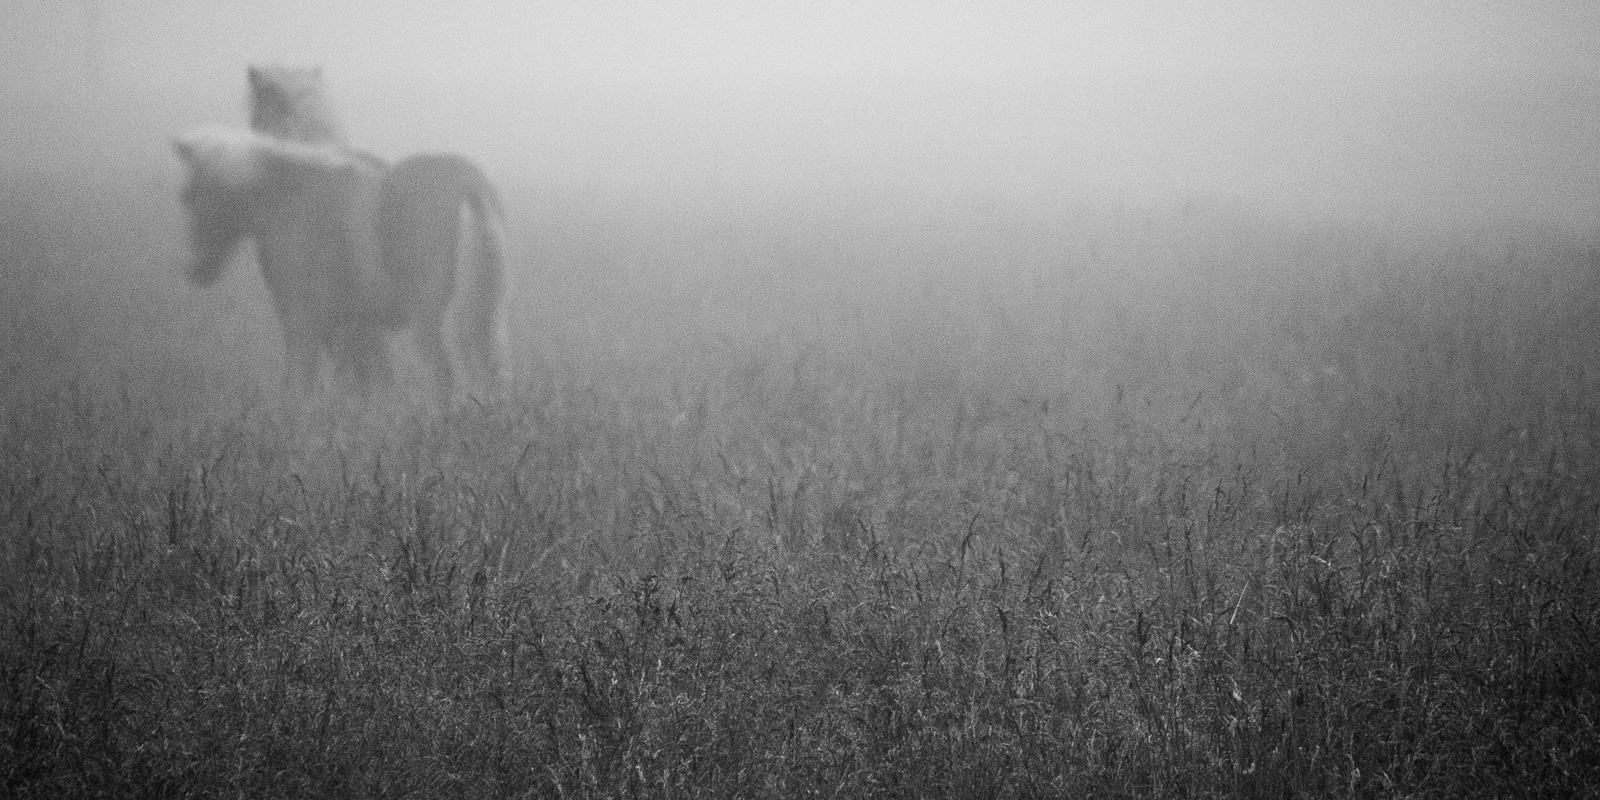 Story of Two Horses #6